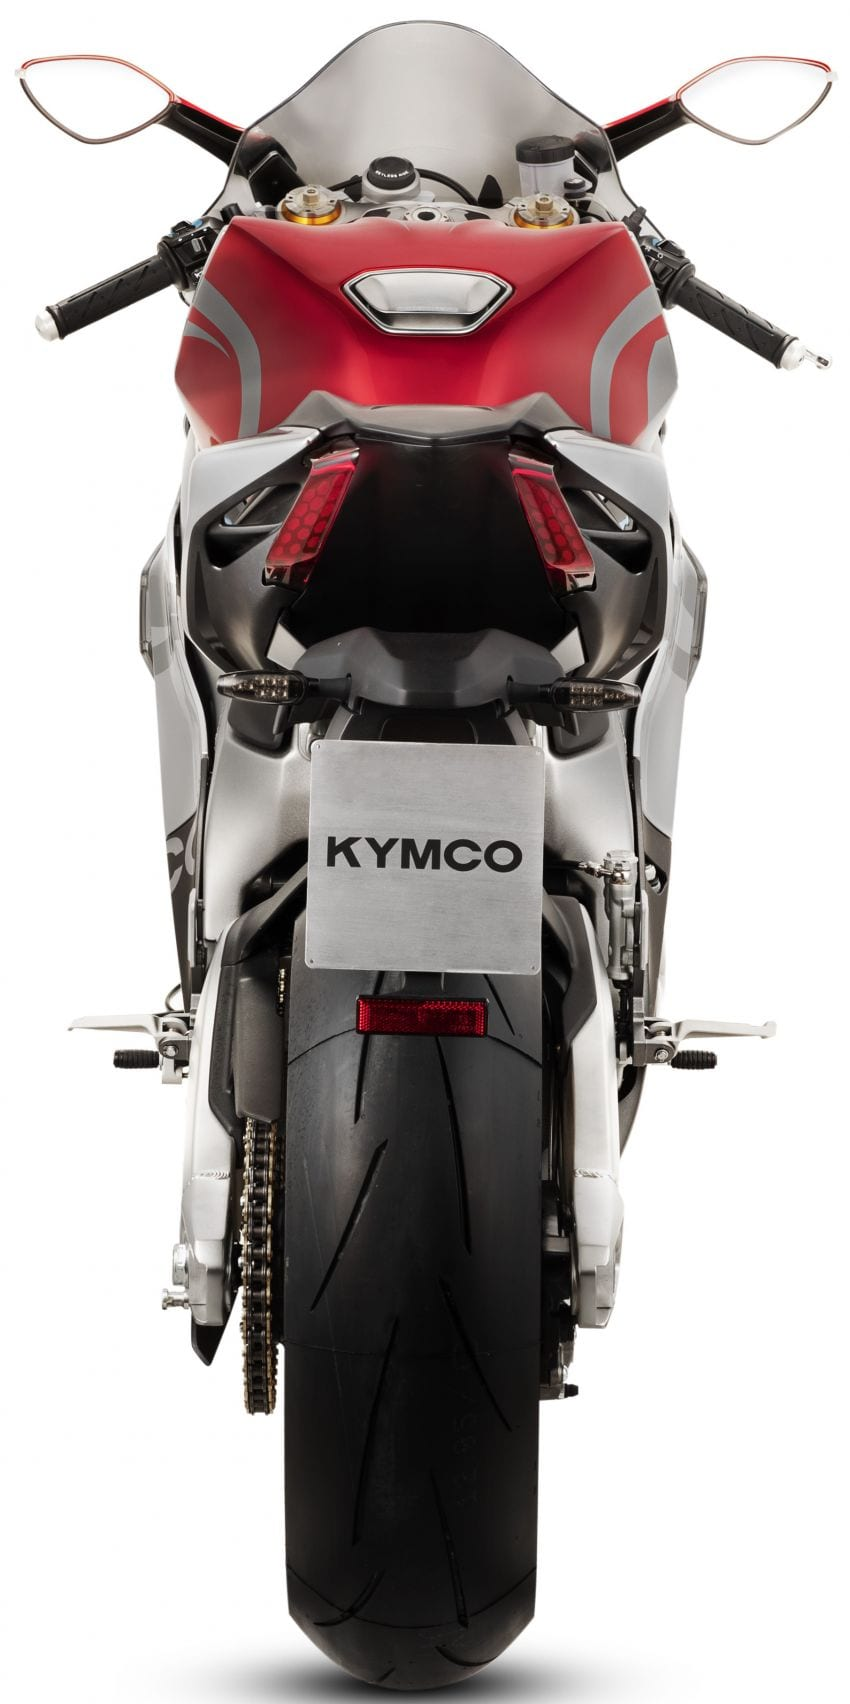 e5a875e1c5b Kymco has been producing solidly-built and reliable scooters, ATVs, and  side x sides for years. Recently, though, the Taiwanese manufacturer has  set its ...